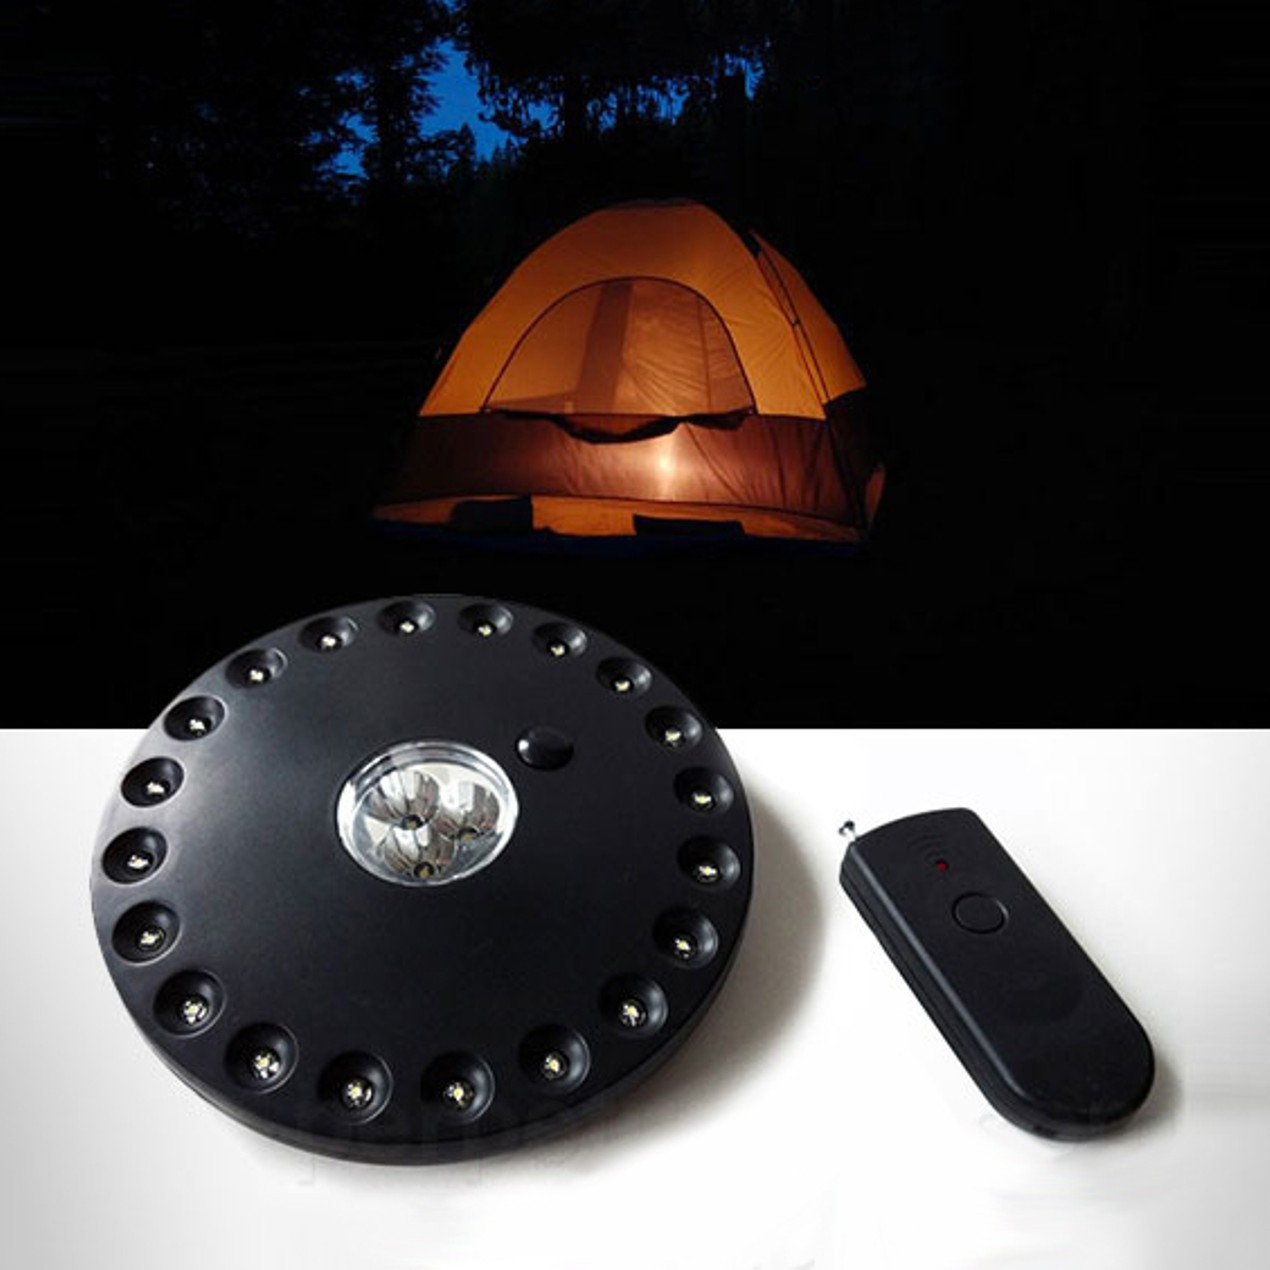 Eddie Bauer Camping Tent Light with Remote Control - Tanga